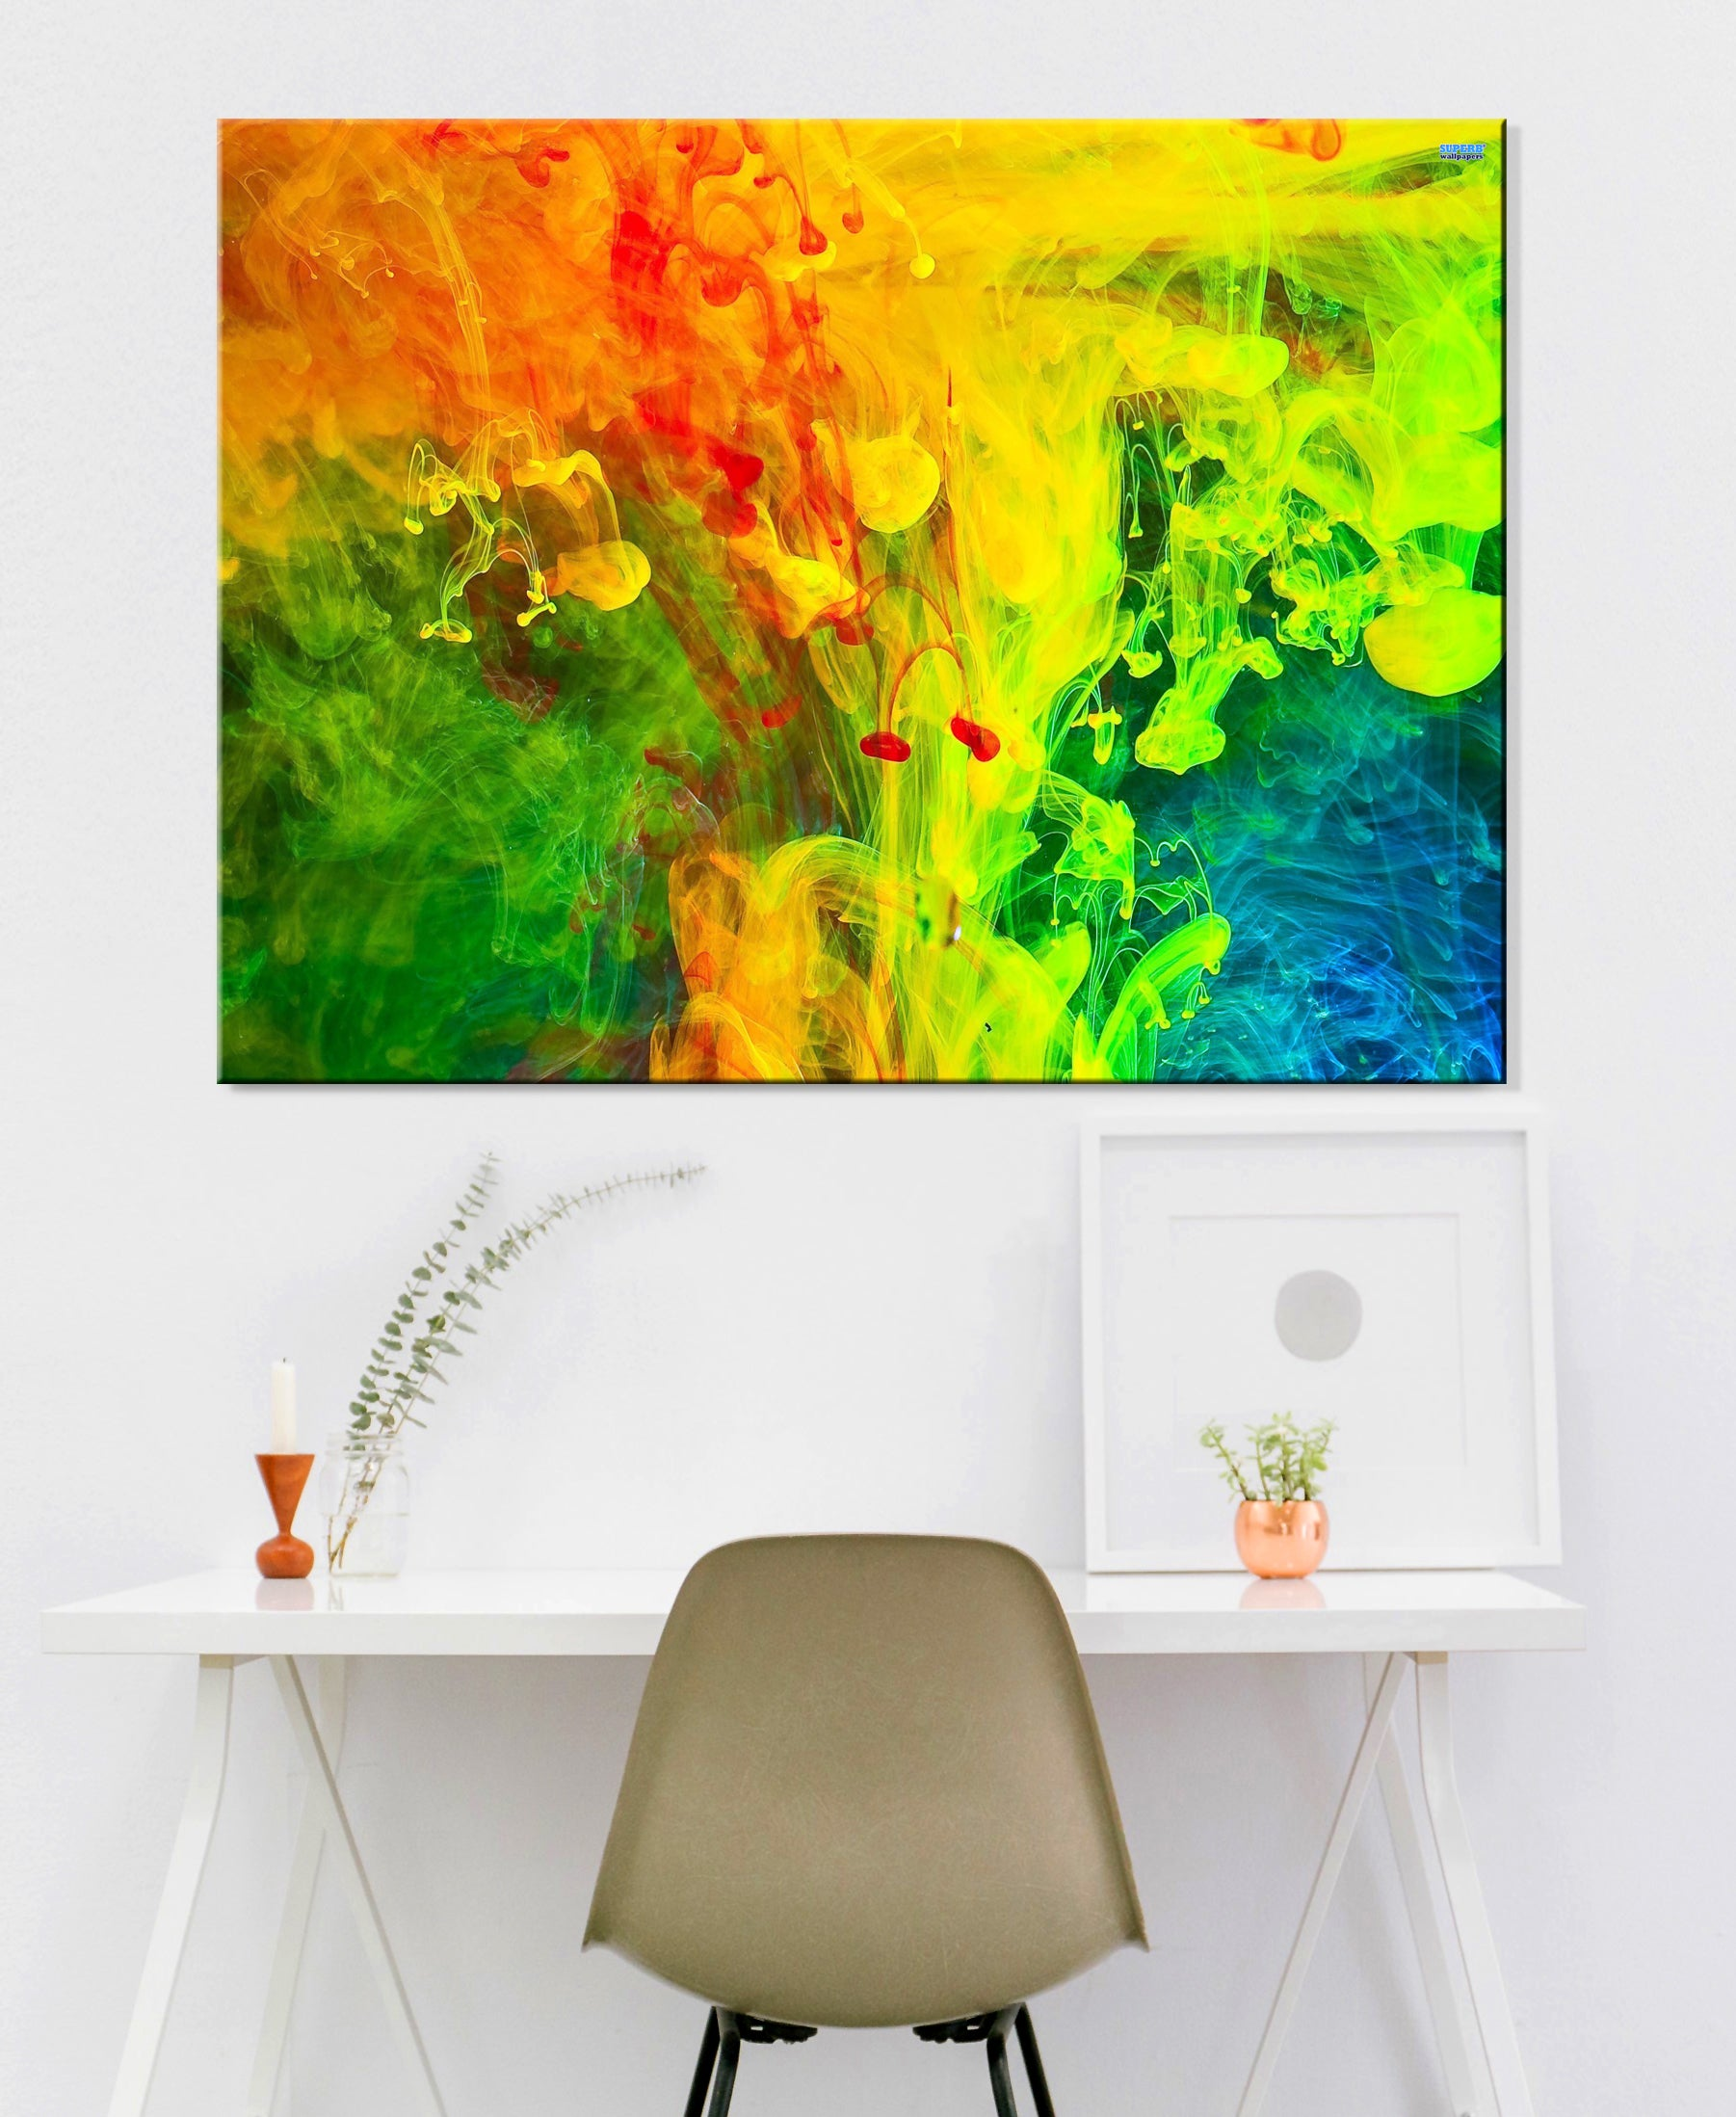 Paint Splash Wall Art: Red Green Yellow Blue Splash Paint (Wood Frame Ready To Hang)